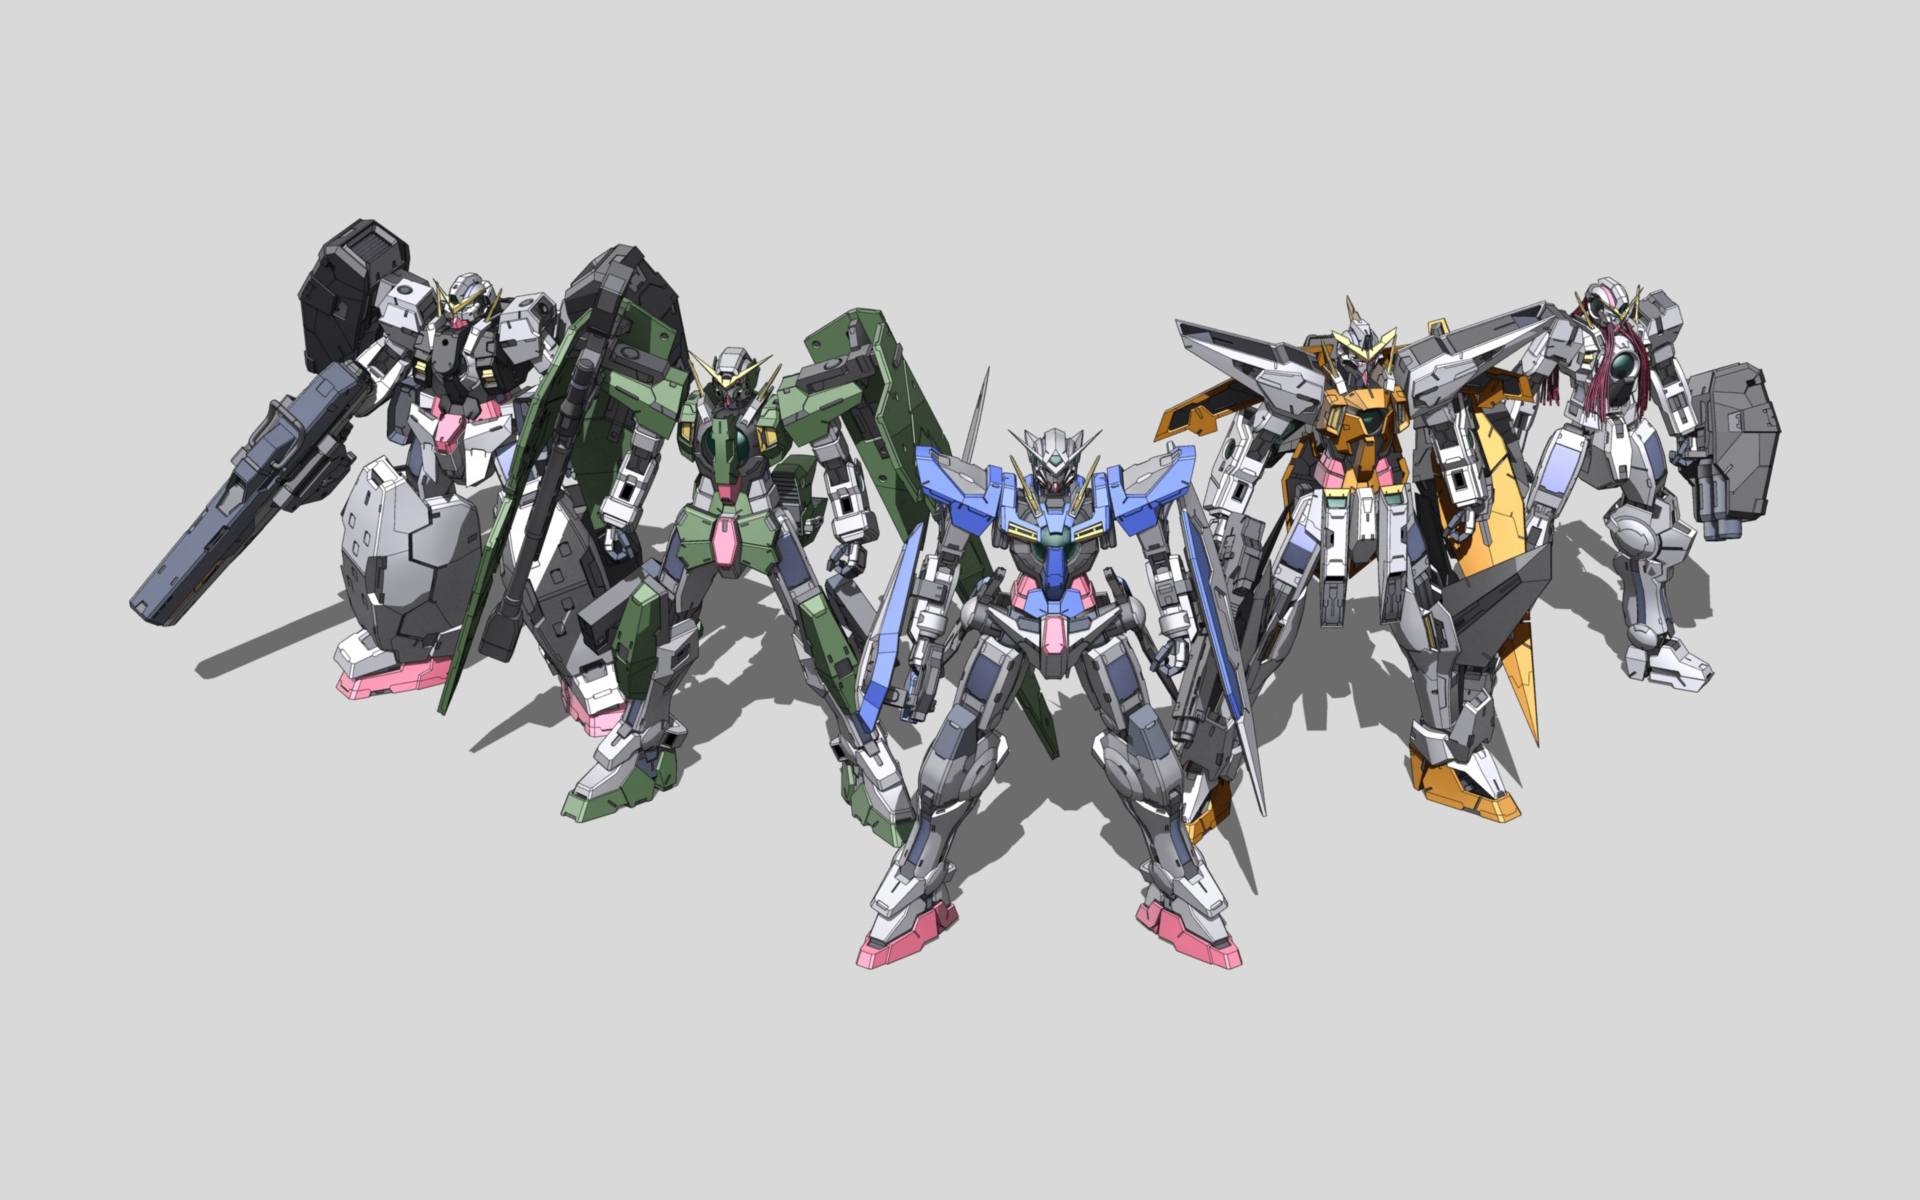 Free Download Gundam 00 Wallpaper 133970 1920x1200 For Your